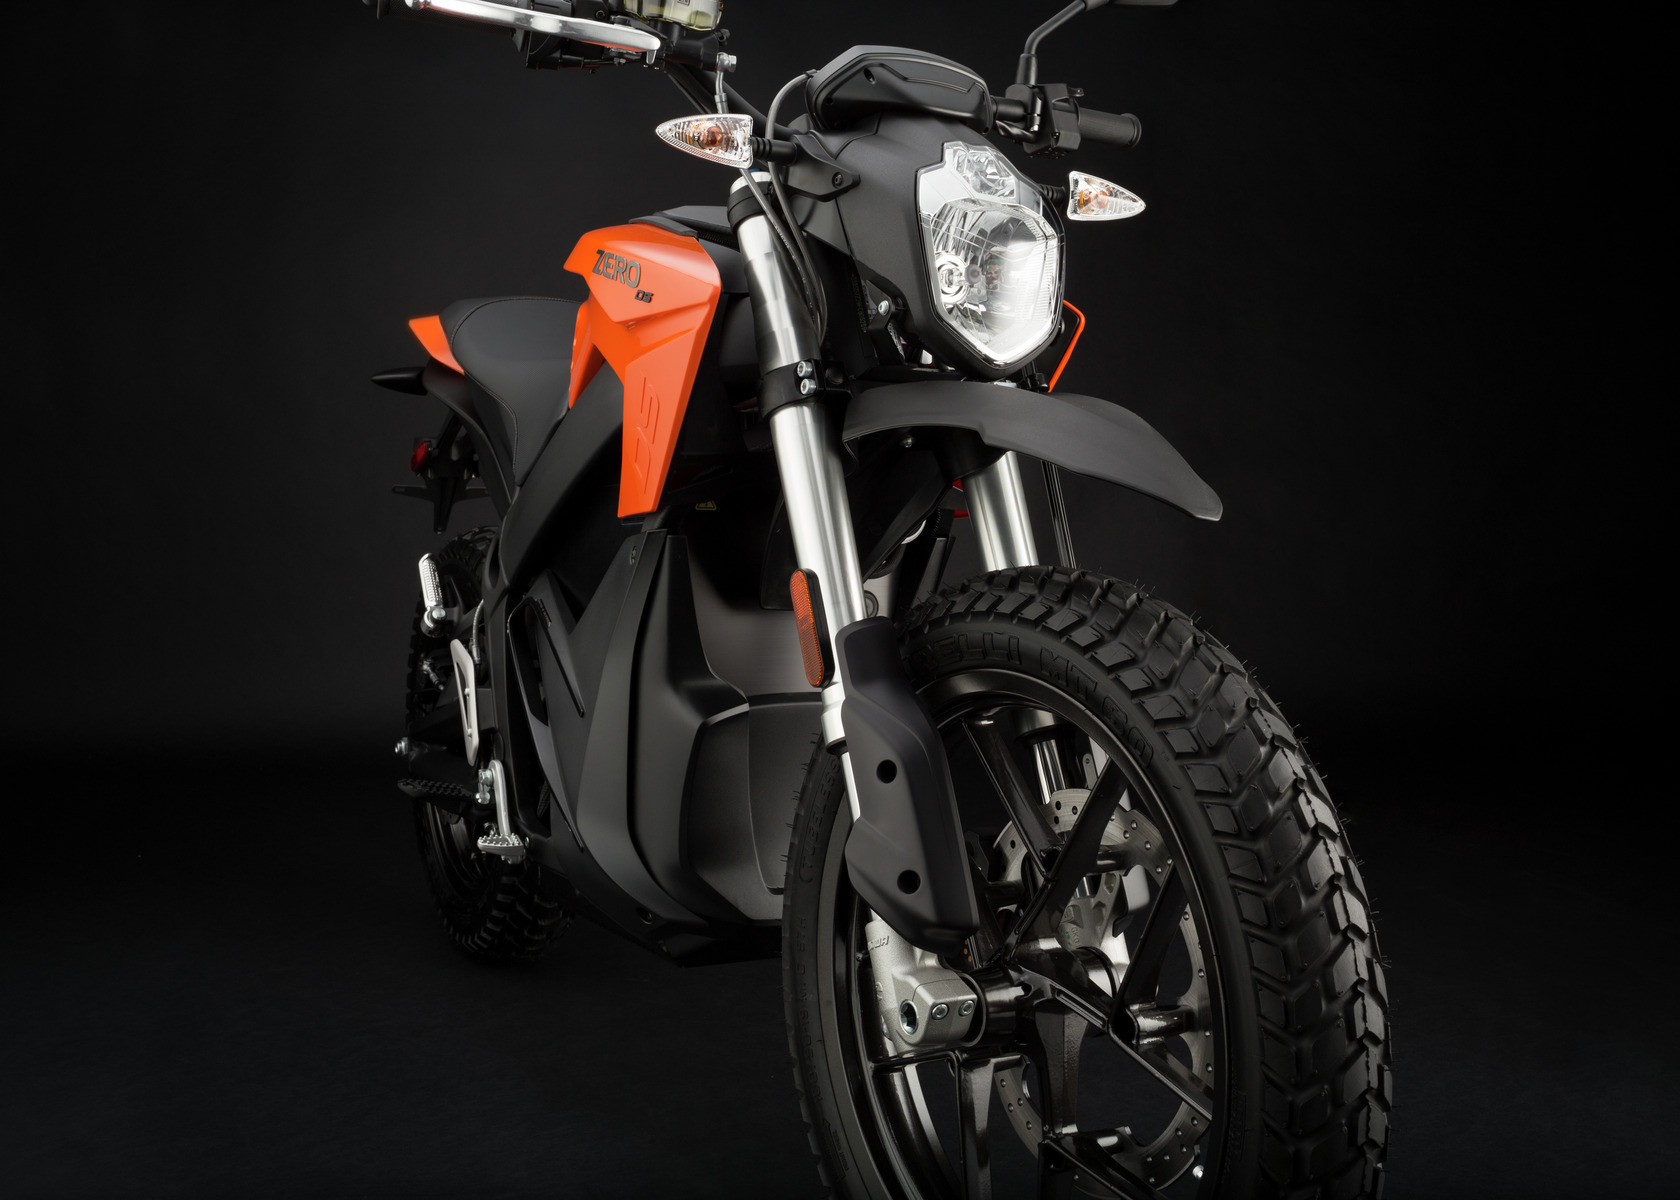 2016 Zero DS Electric Motorcycle: Front Fork